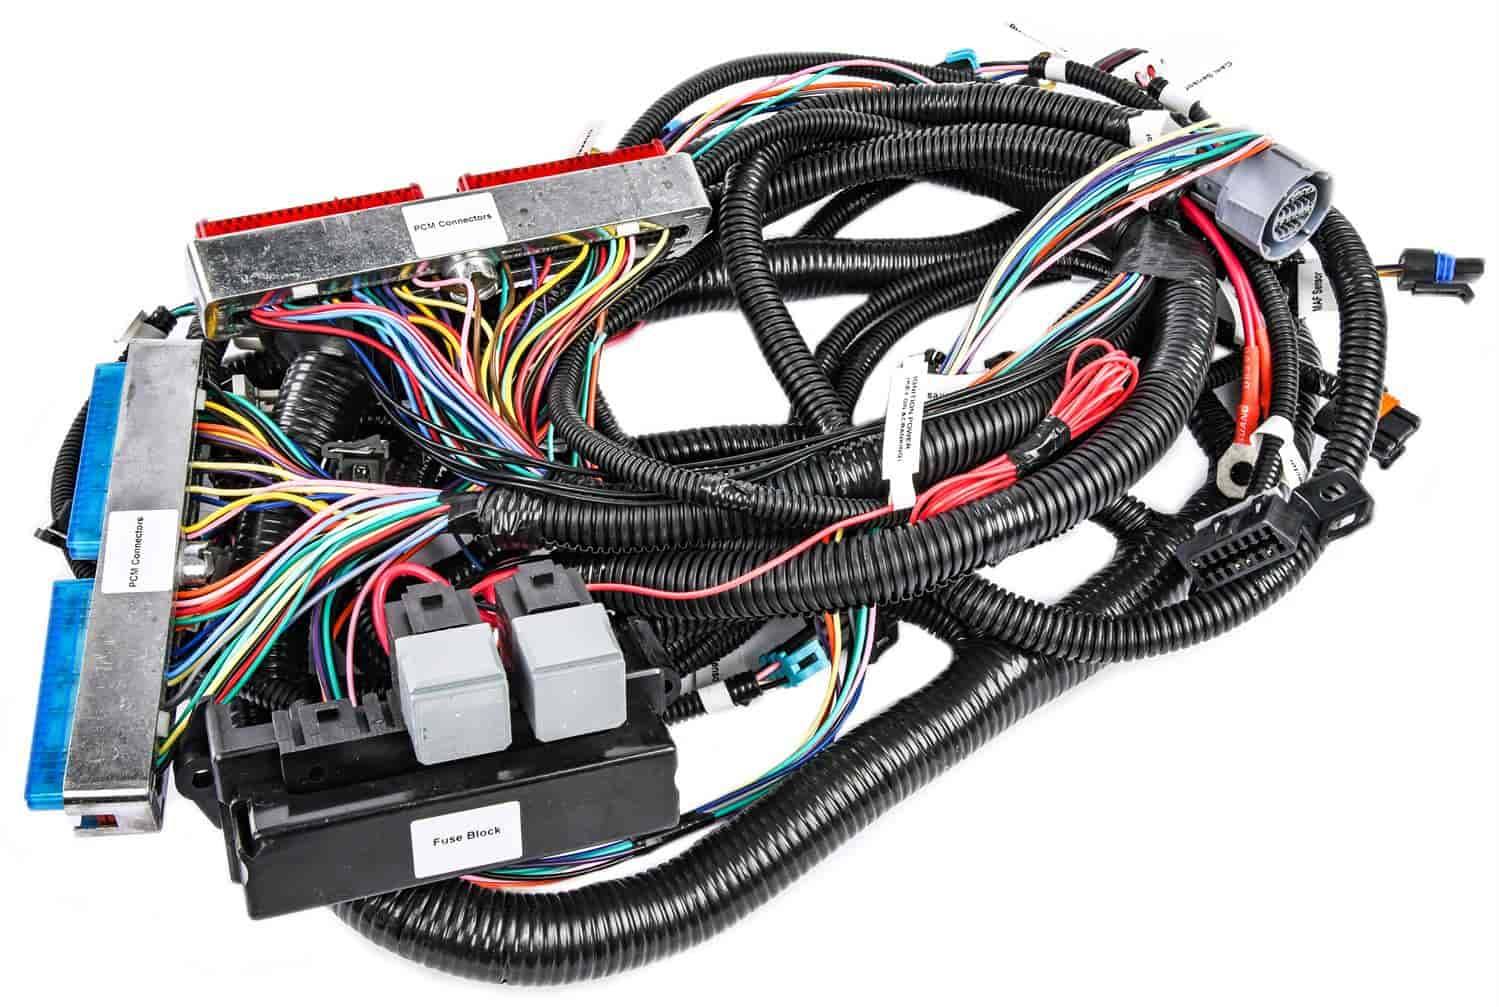 JEGS 10414: LS Stand Alone Wire Harness   1999-2006 GM Vortec Engine Truck    Drive-by-Cable applications with LS1 intake manifold and 4L60E  transmissions   4L60E & 4L80E transmission   Standard Length Harness   JEGS   Vortec Wiring Harness      JEGS